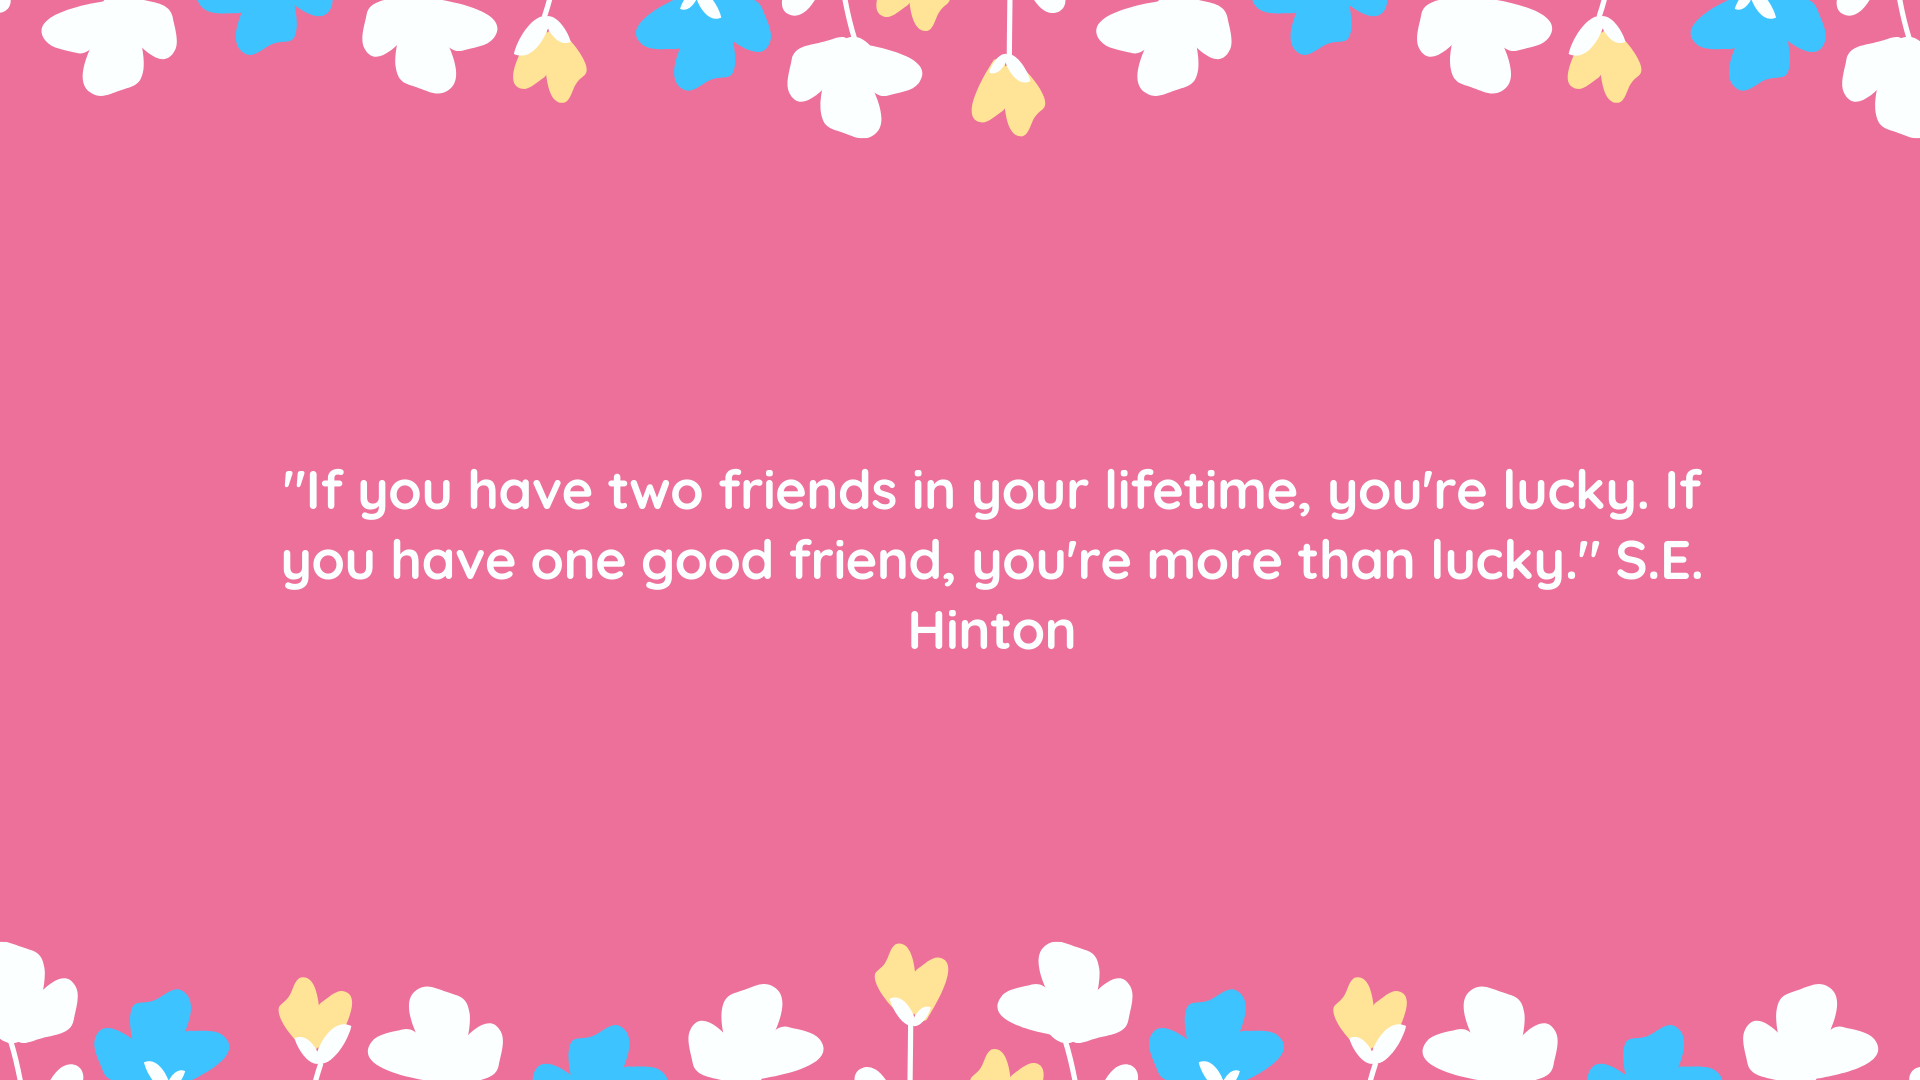 """If you have two friends in your lifetime, you're lucky. If you have one good friend, you're more than lucky."" S.E. Hinton"